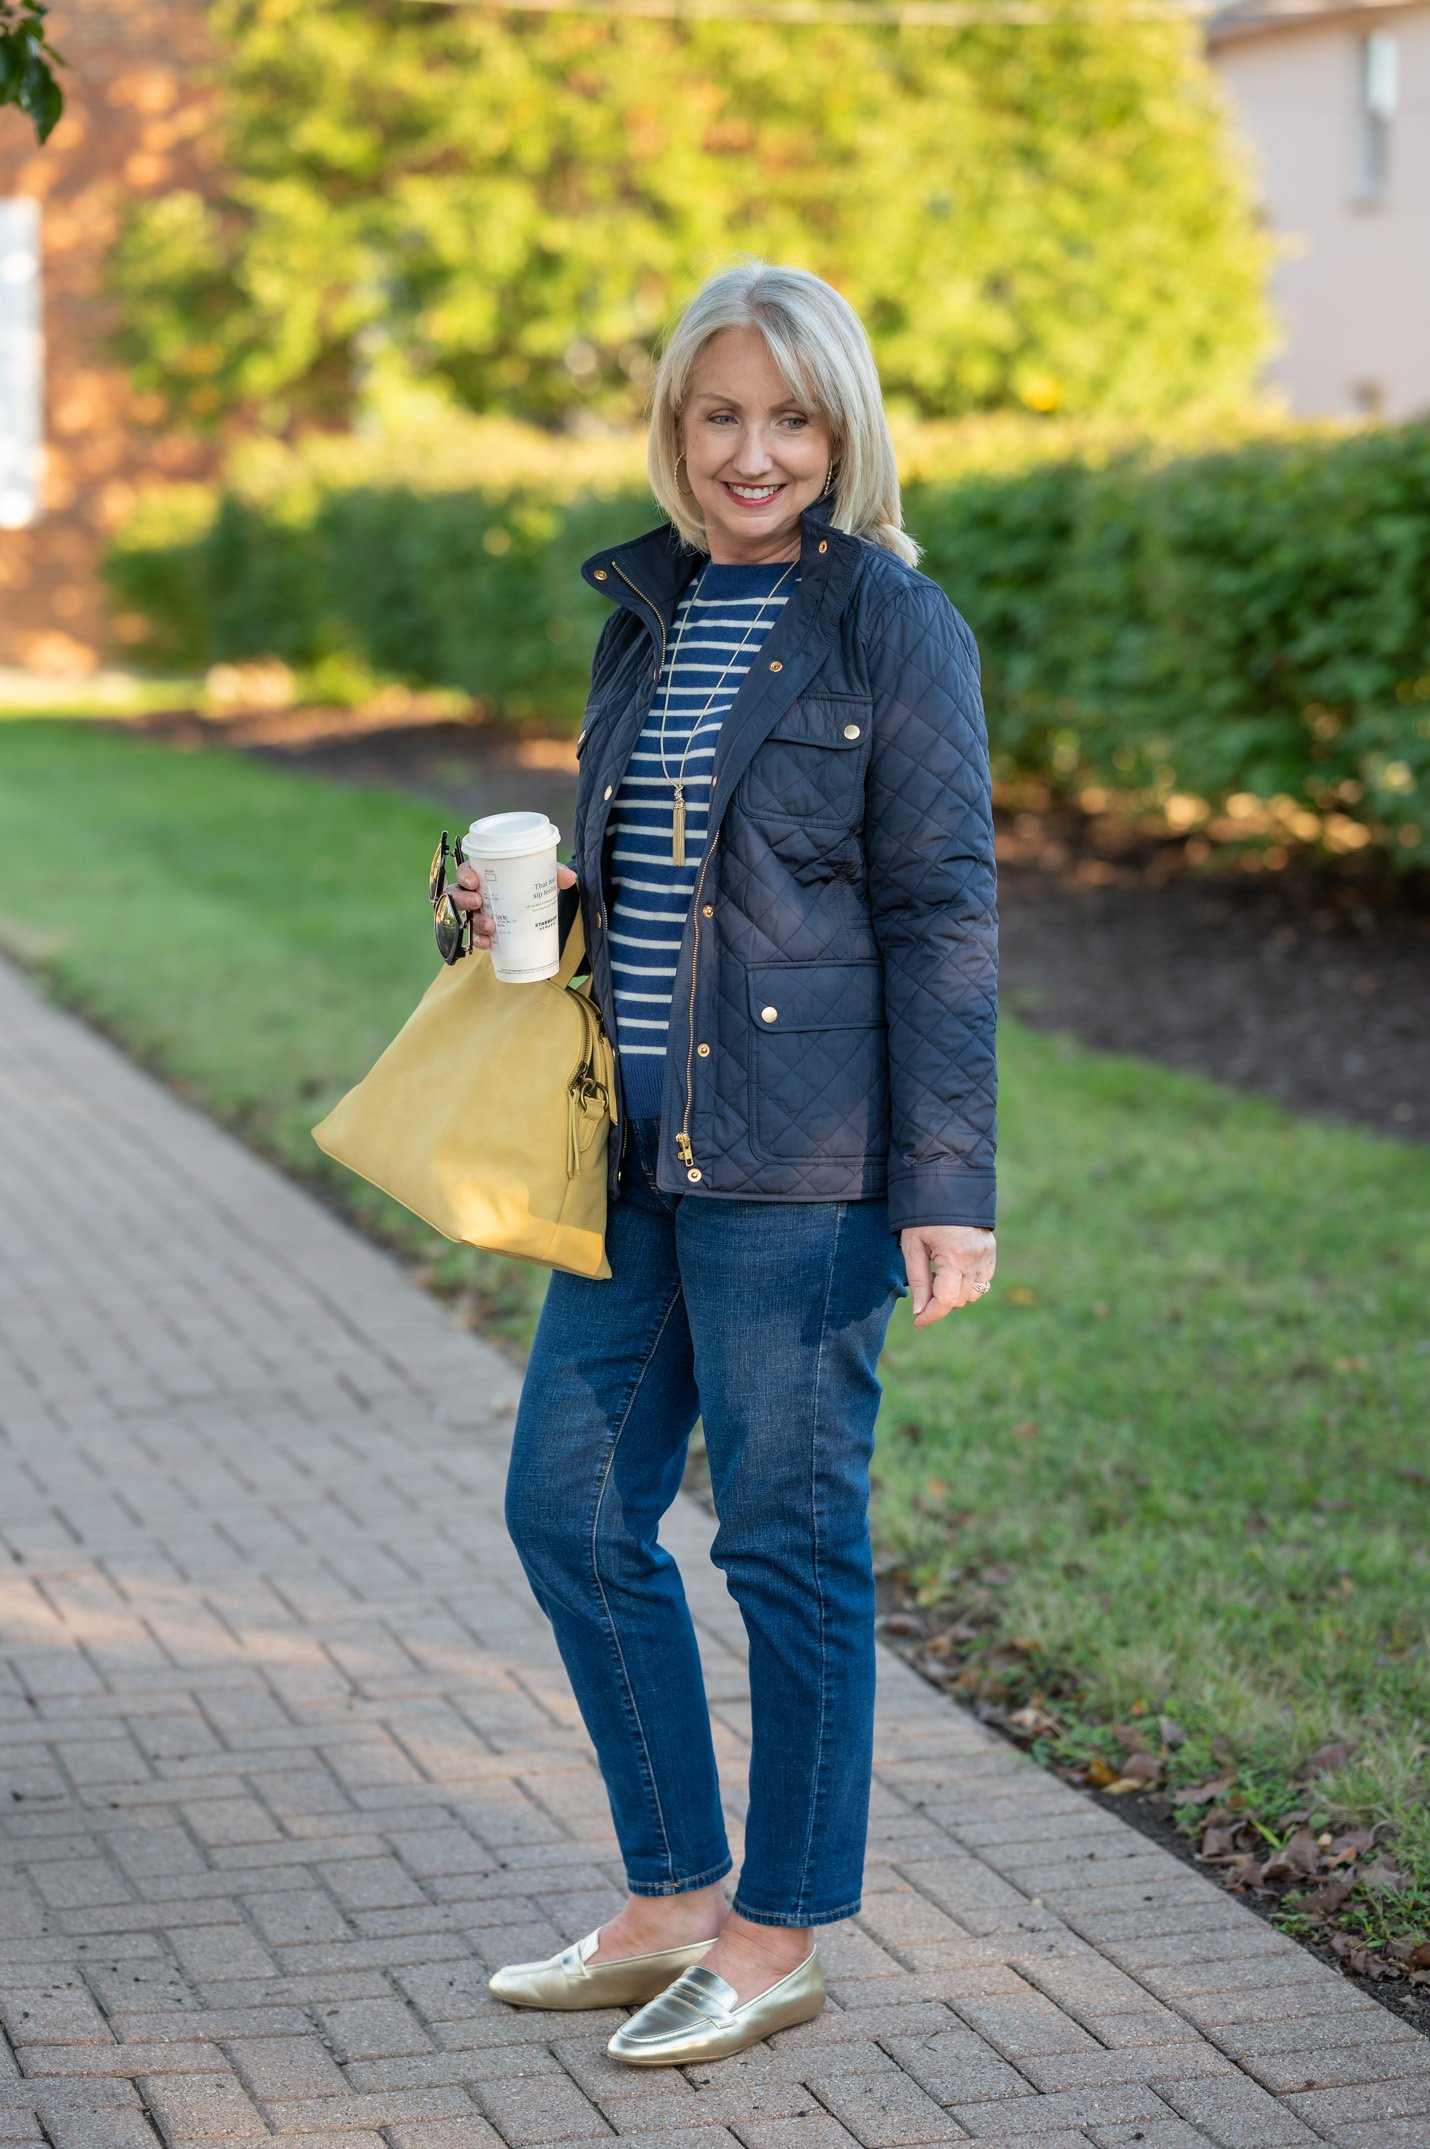 Classic Cashmere with a fun Twist for Fall